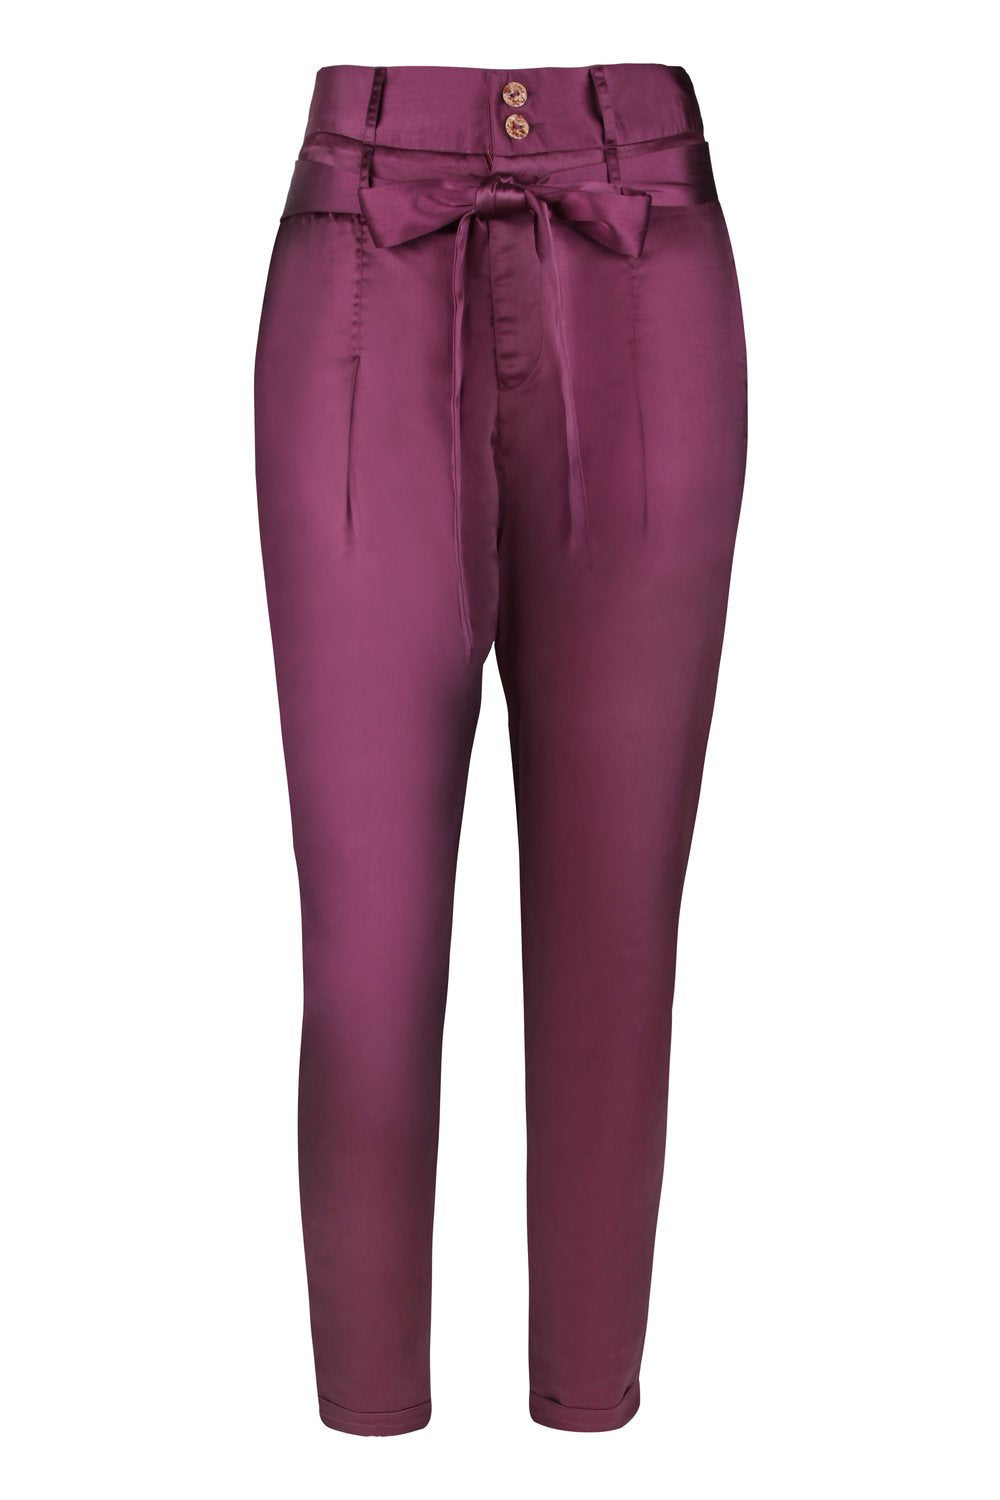 Purple High Waisted Tapered Pants